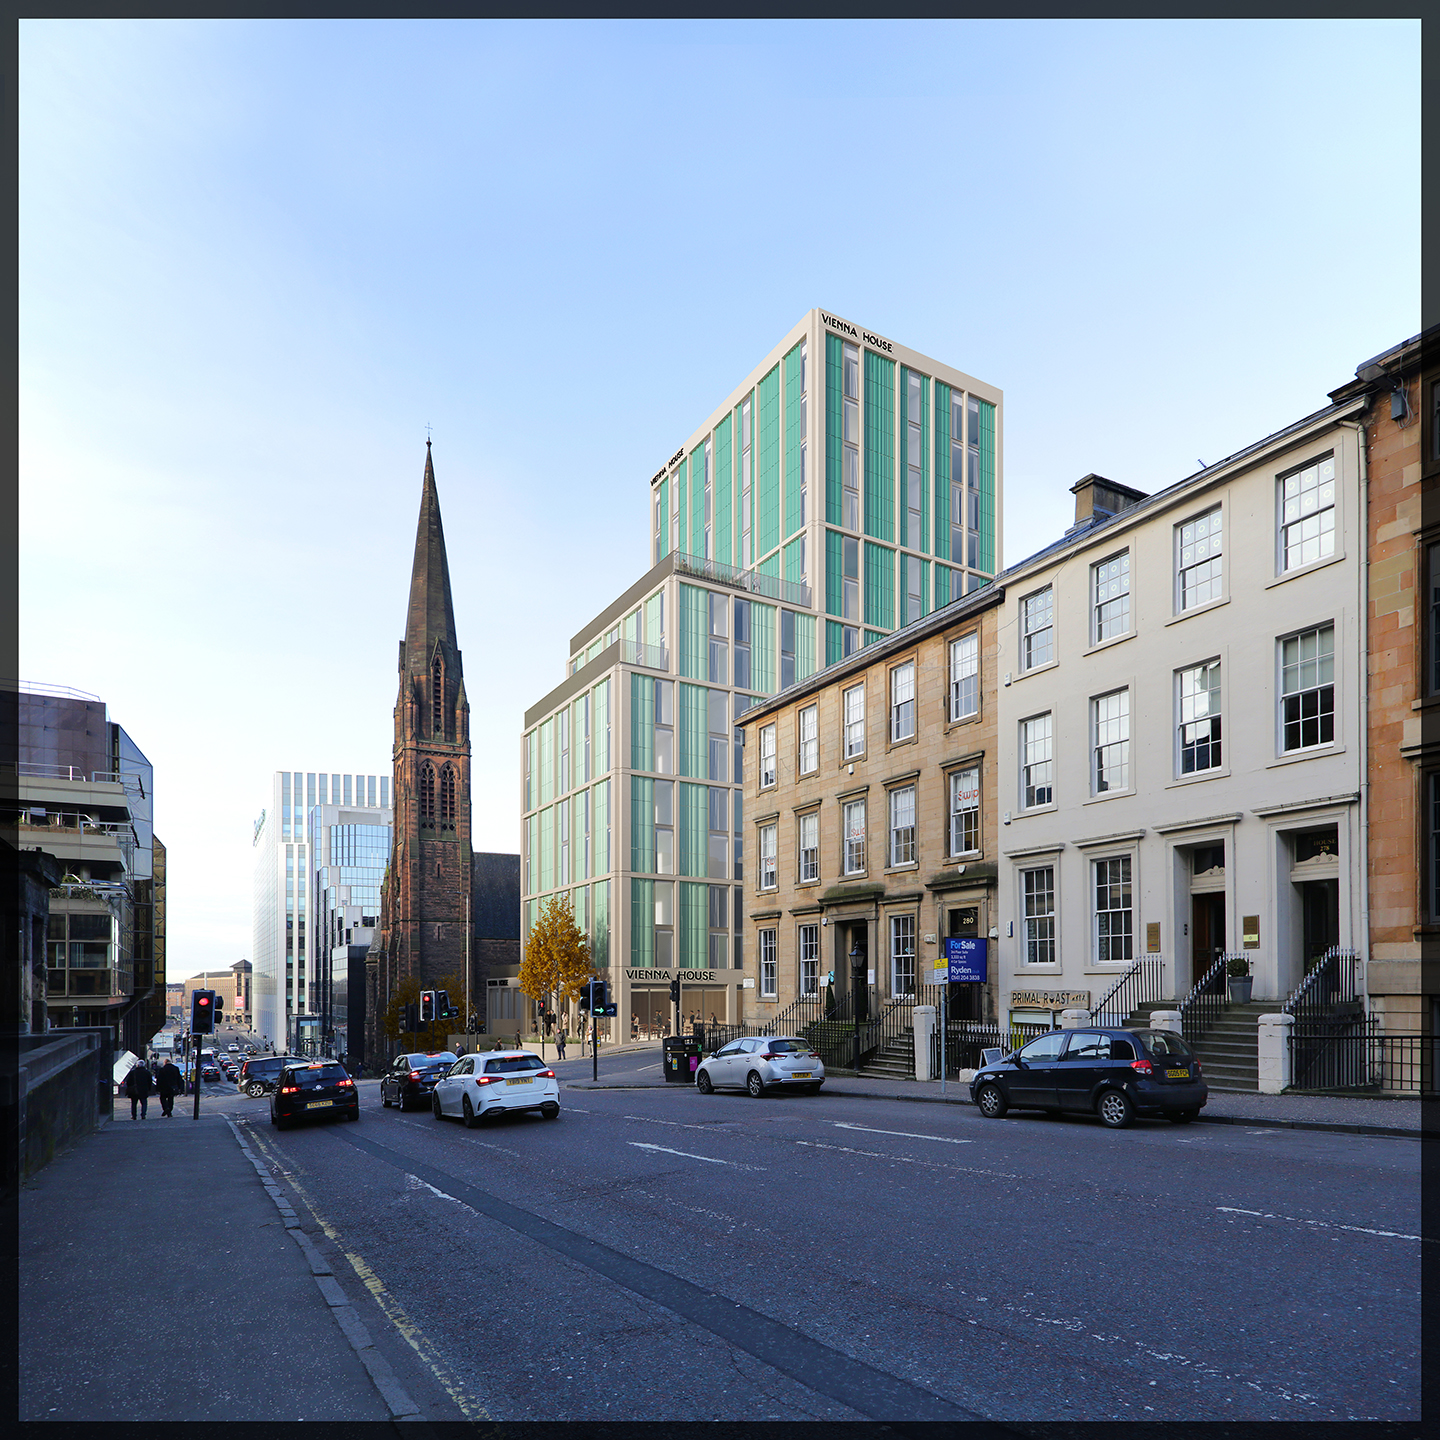 Planning Consent For Two-Nine-Two